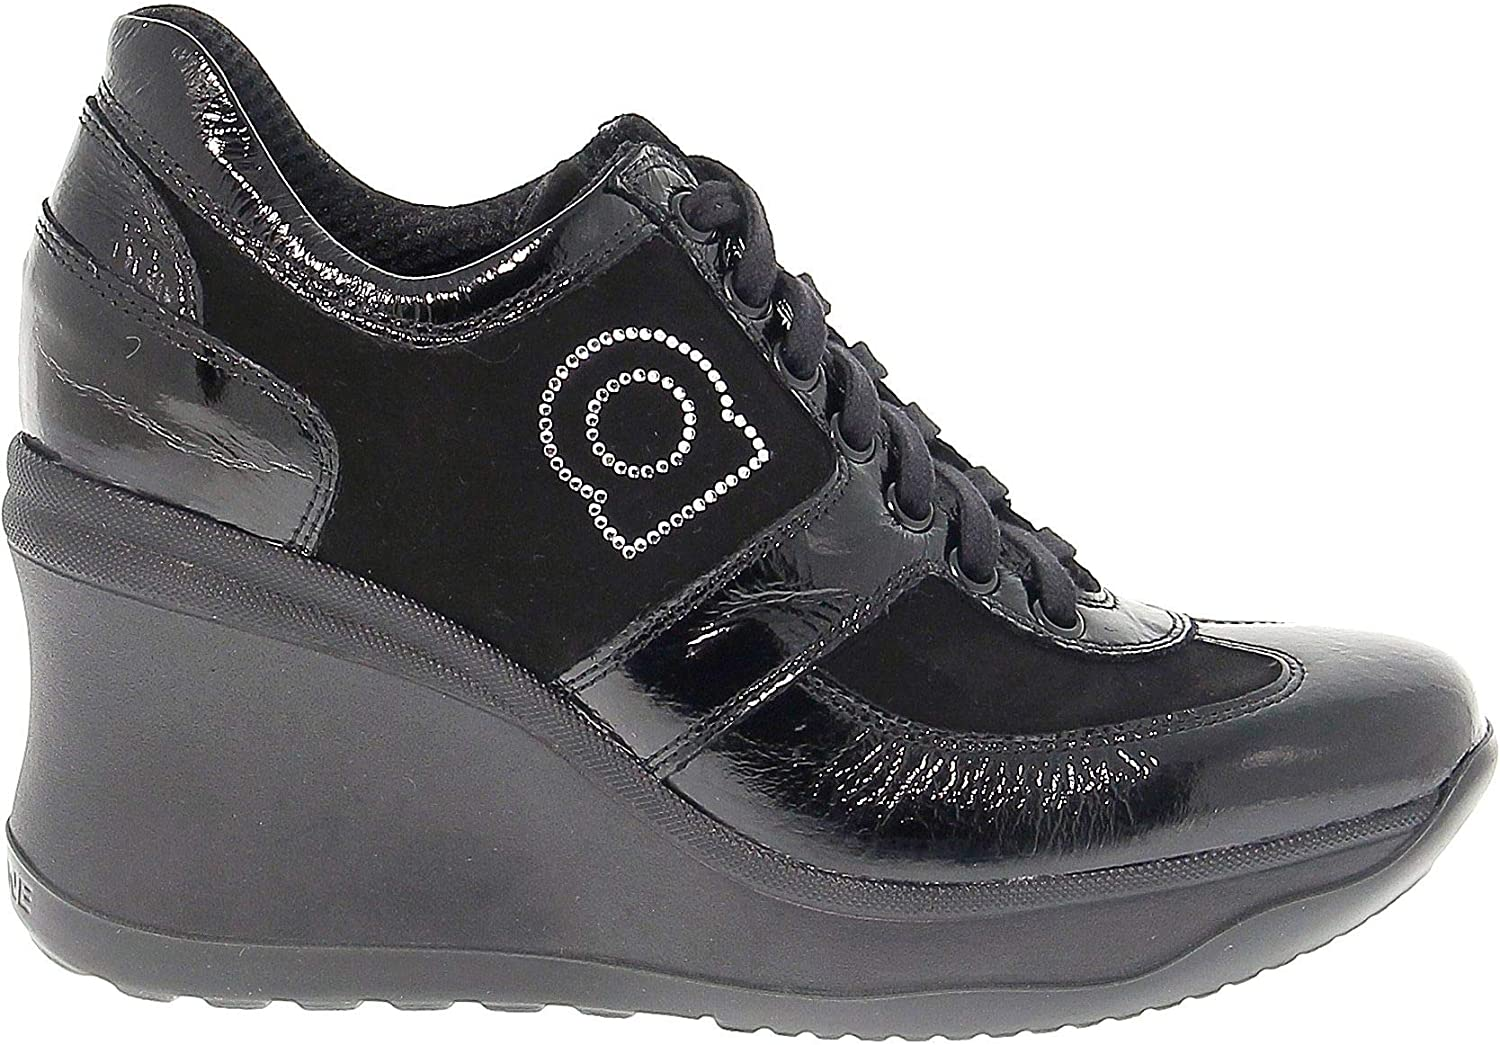 RUCO LINE Women's RUCO1800N Black Suede Sneakers